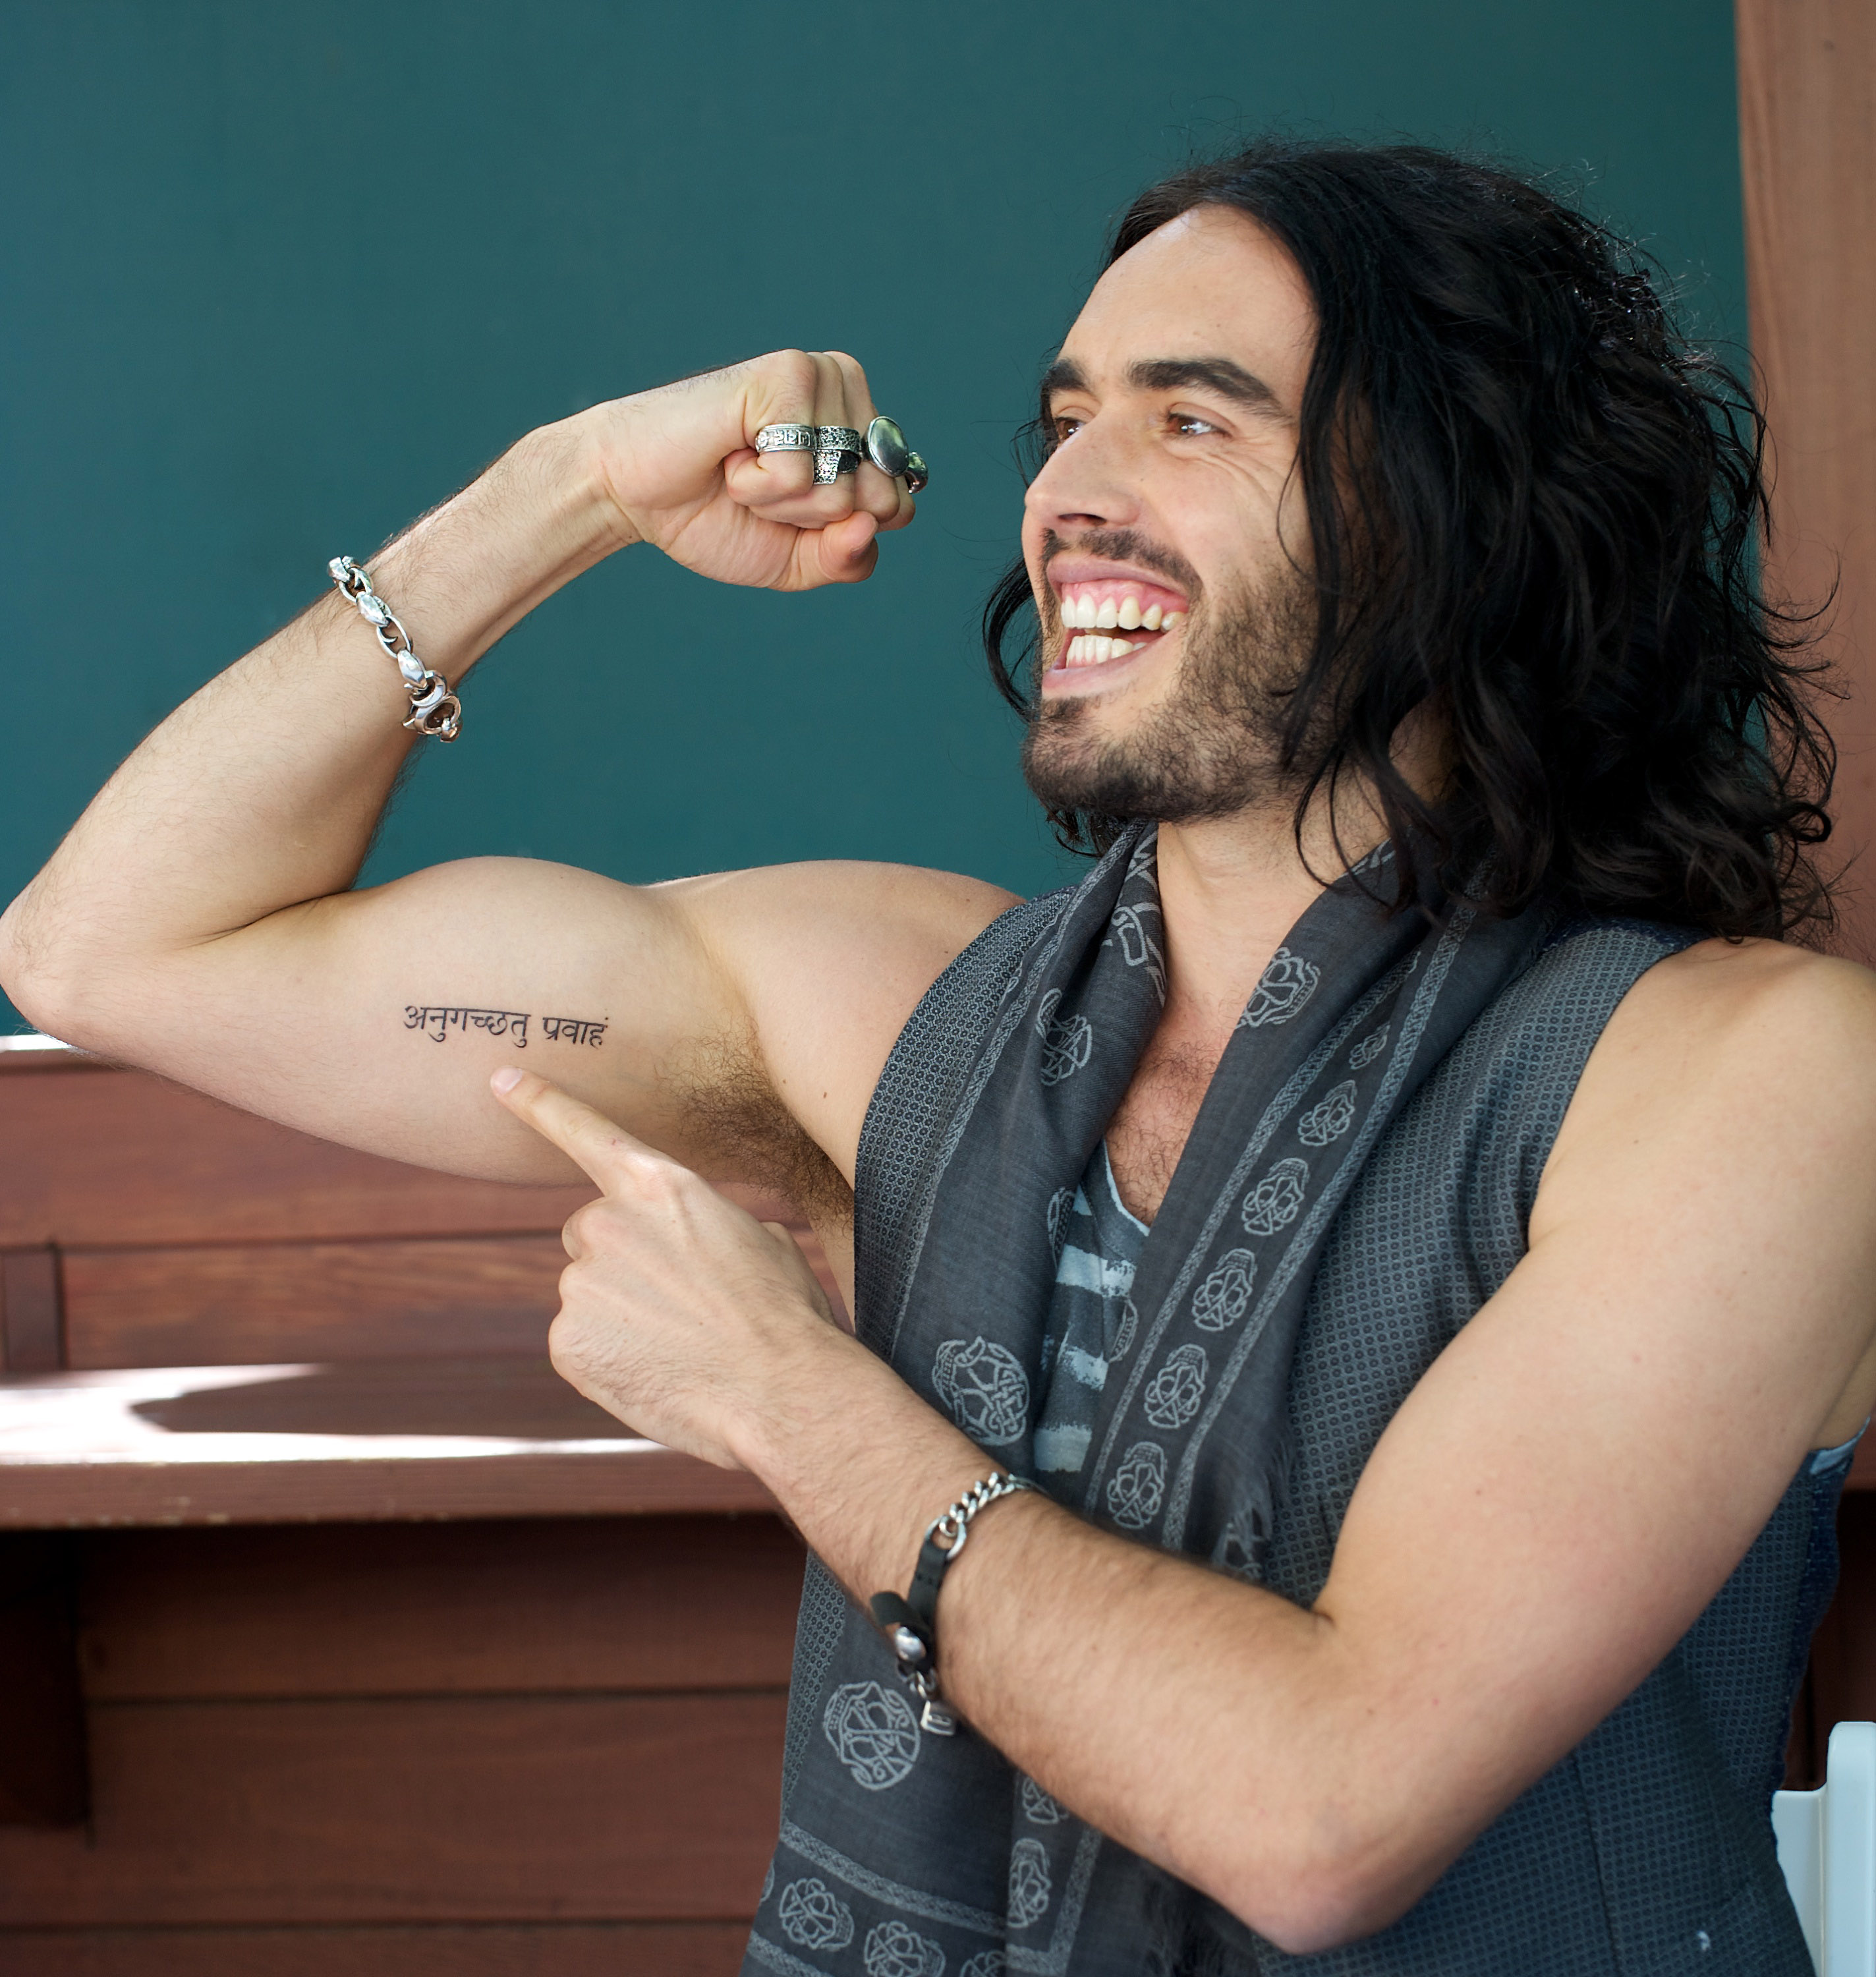 Who is russell brand dating 2020 presidential candidates